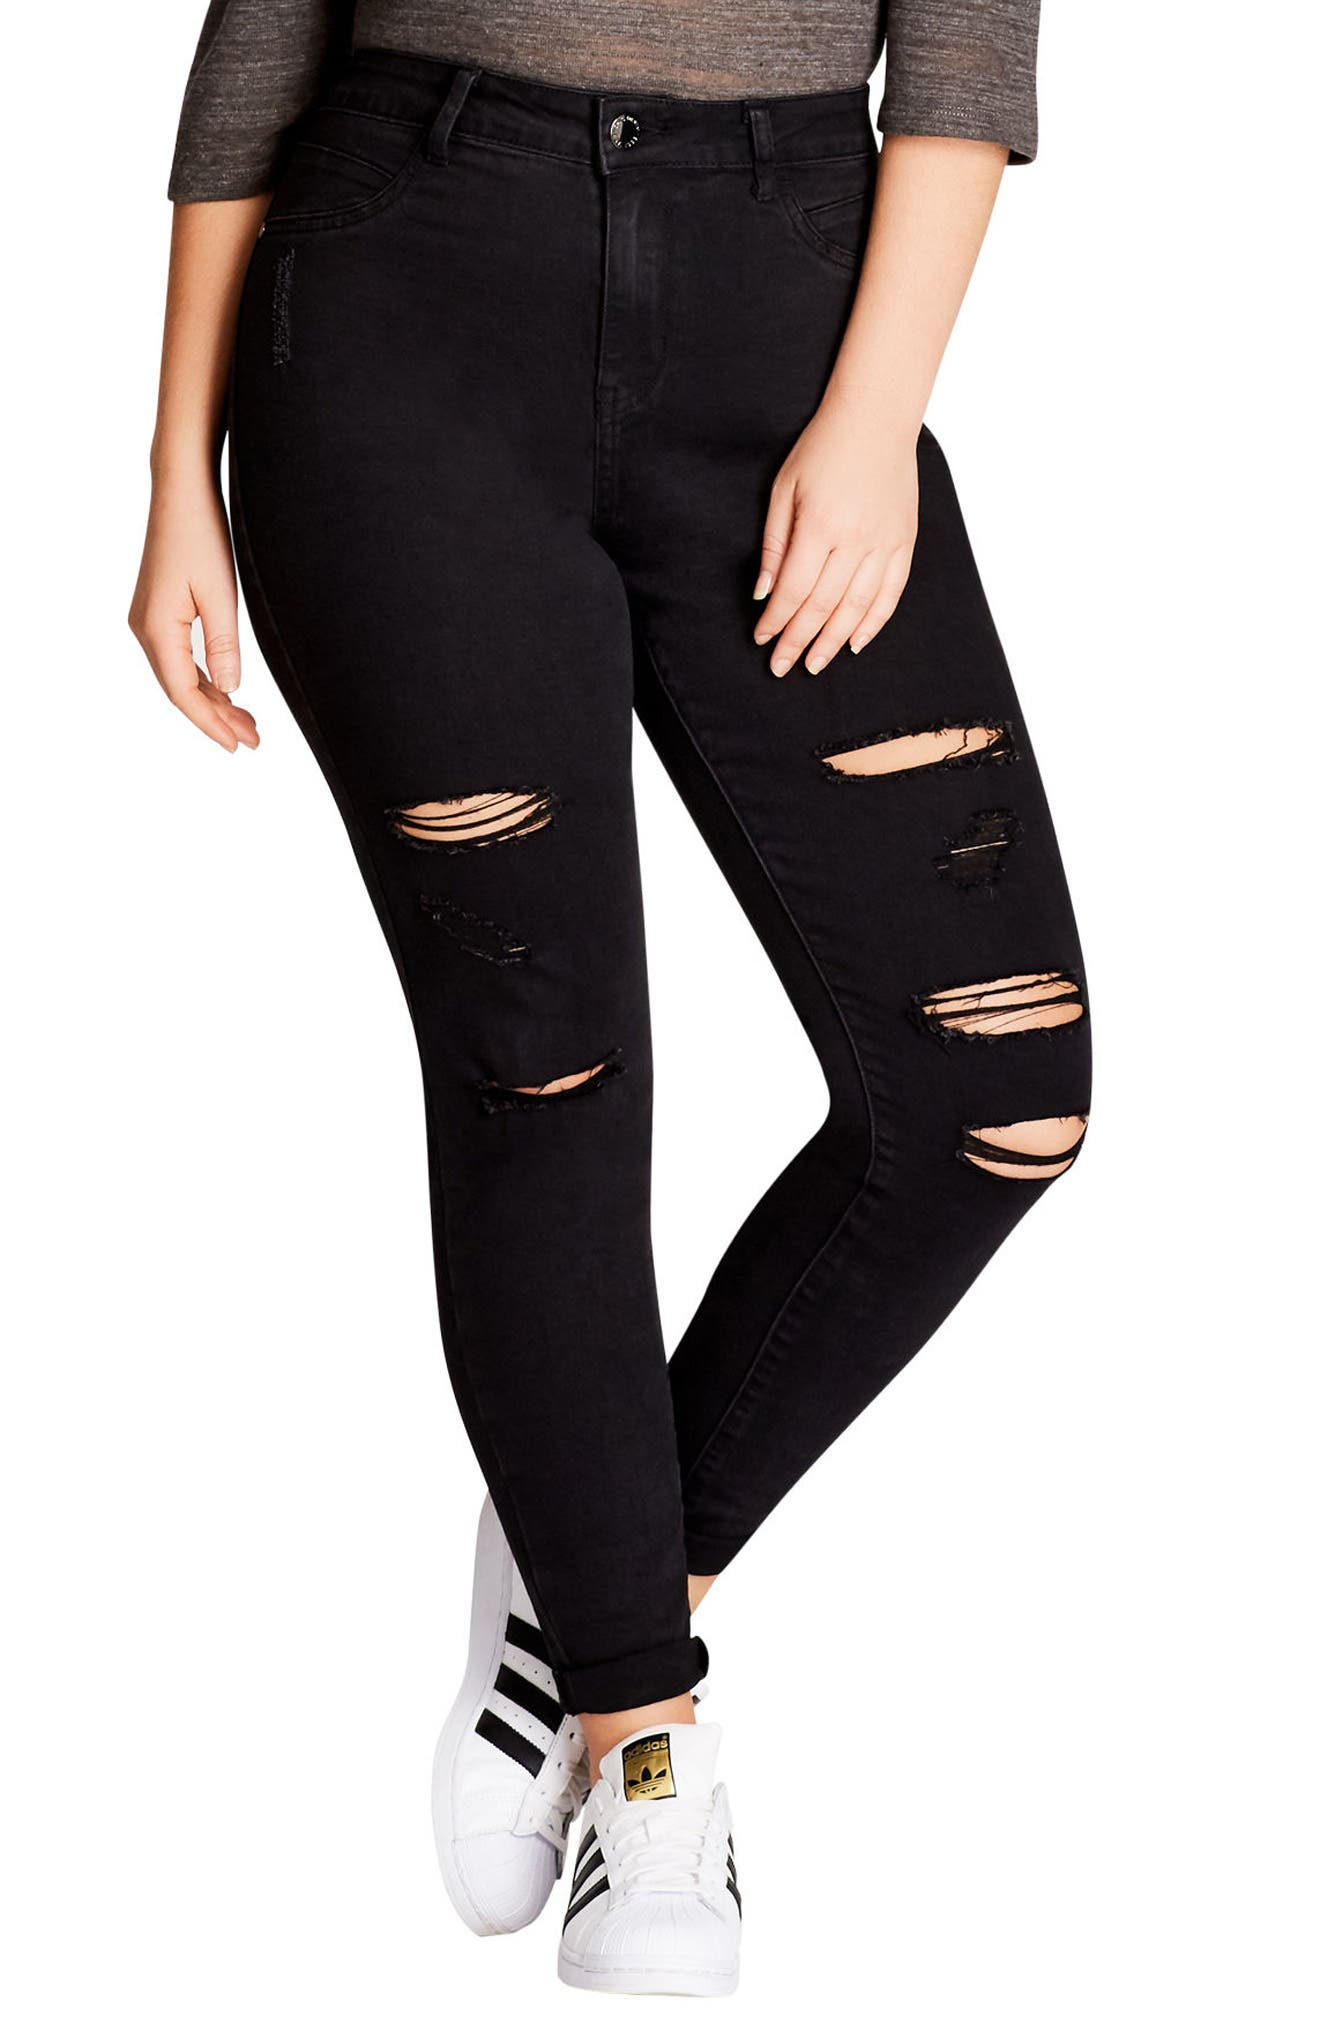 CITY CHIC Rock 'n' Roll Destroyed Skinny Jeans, Main, color, BLACK